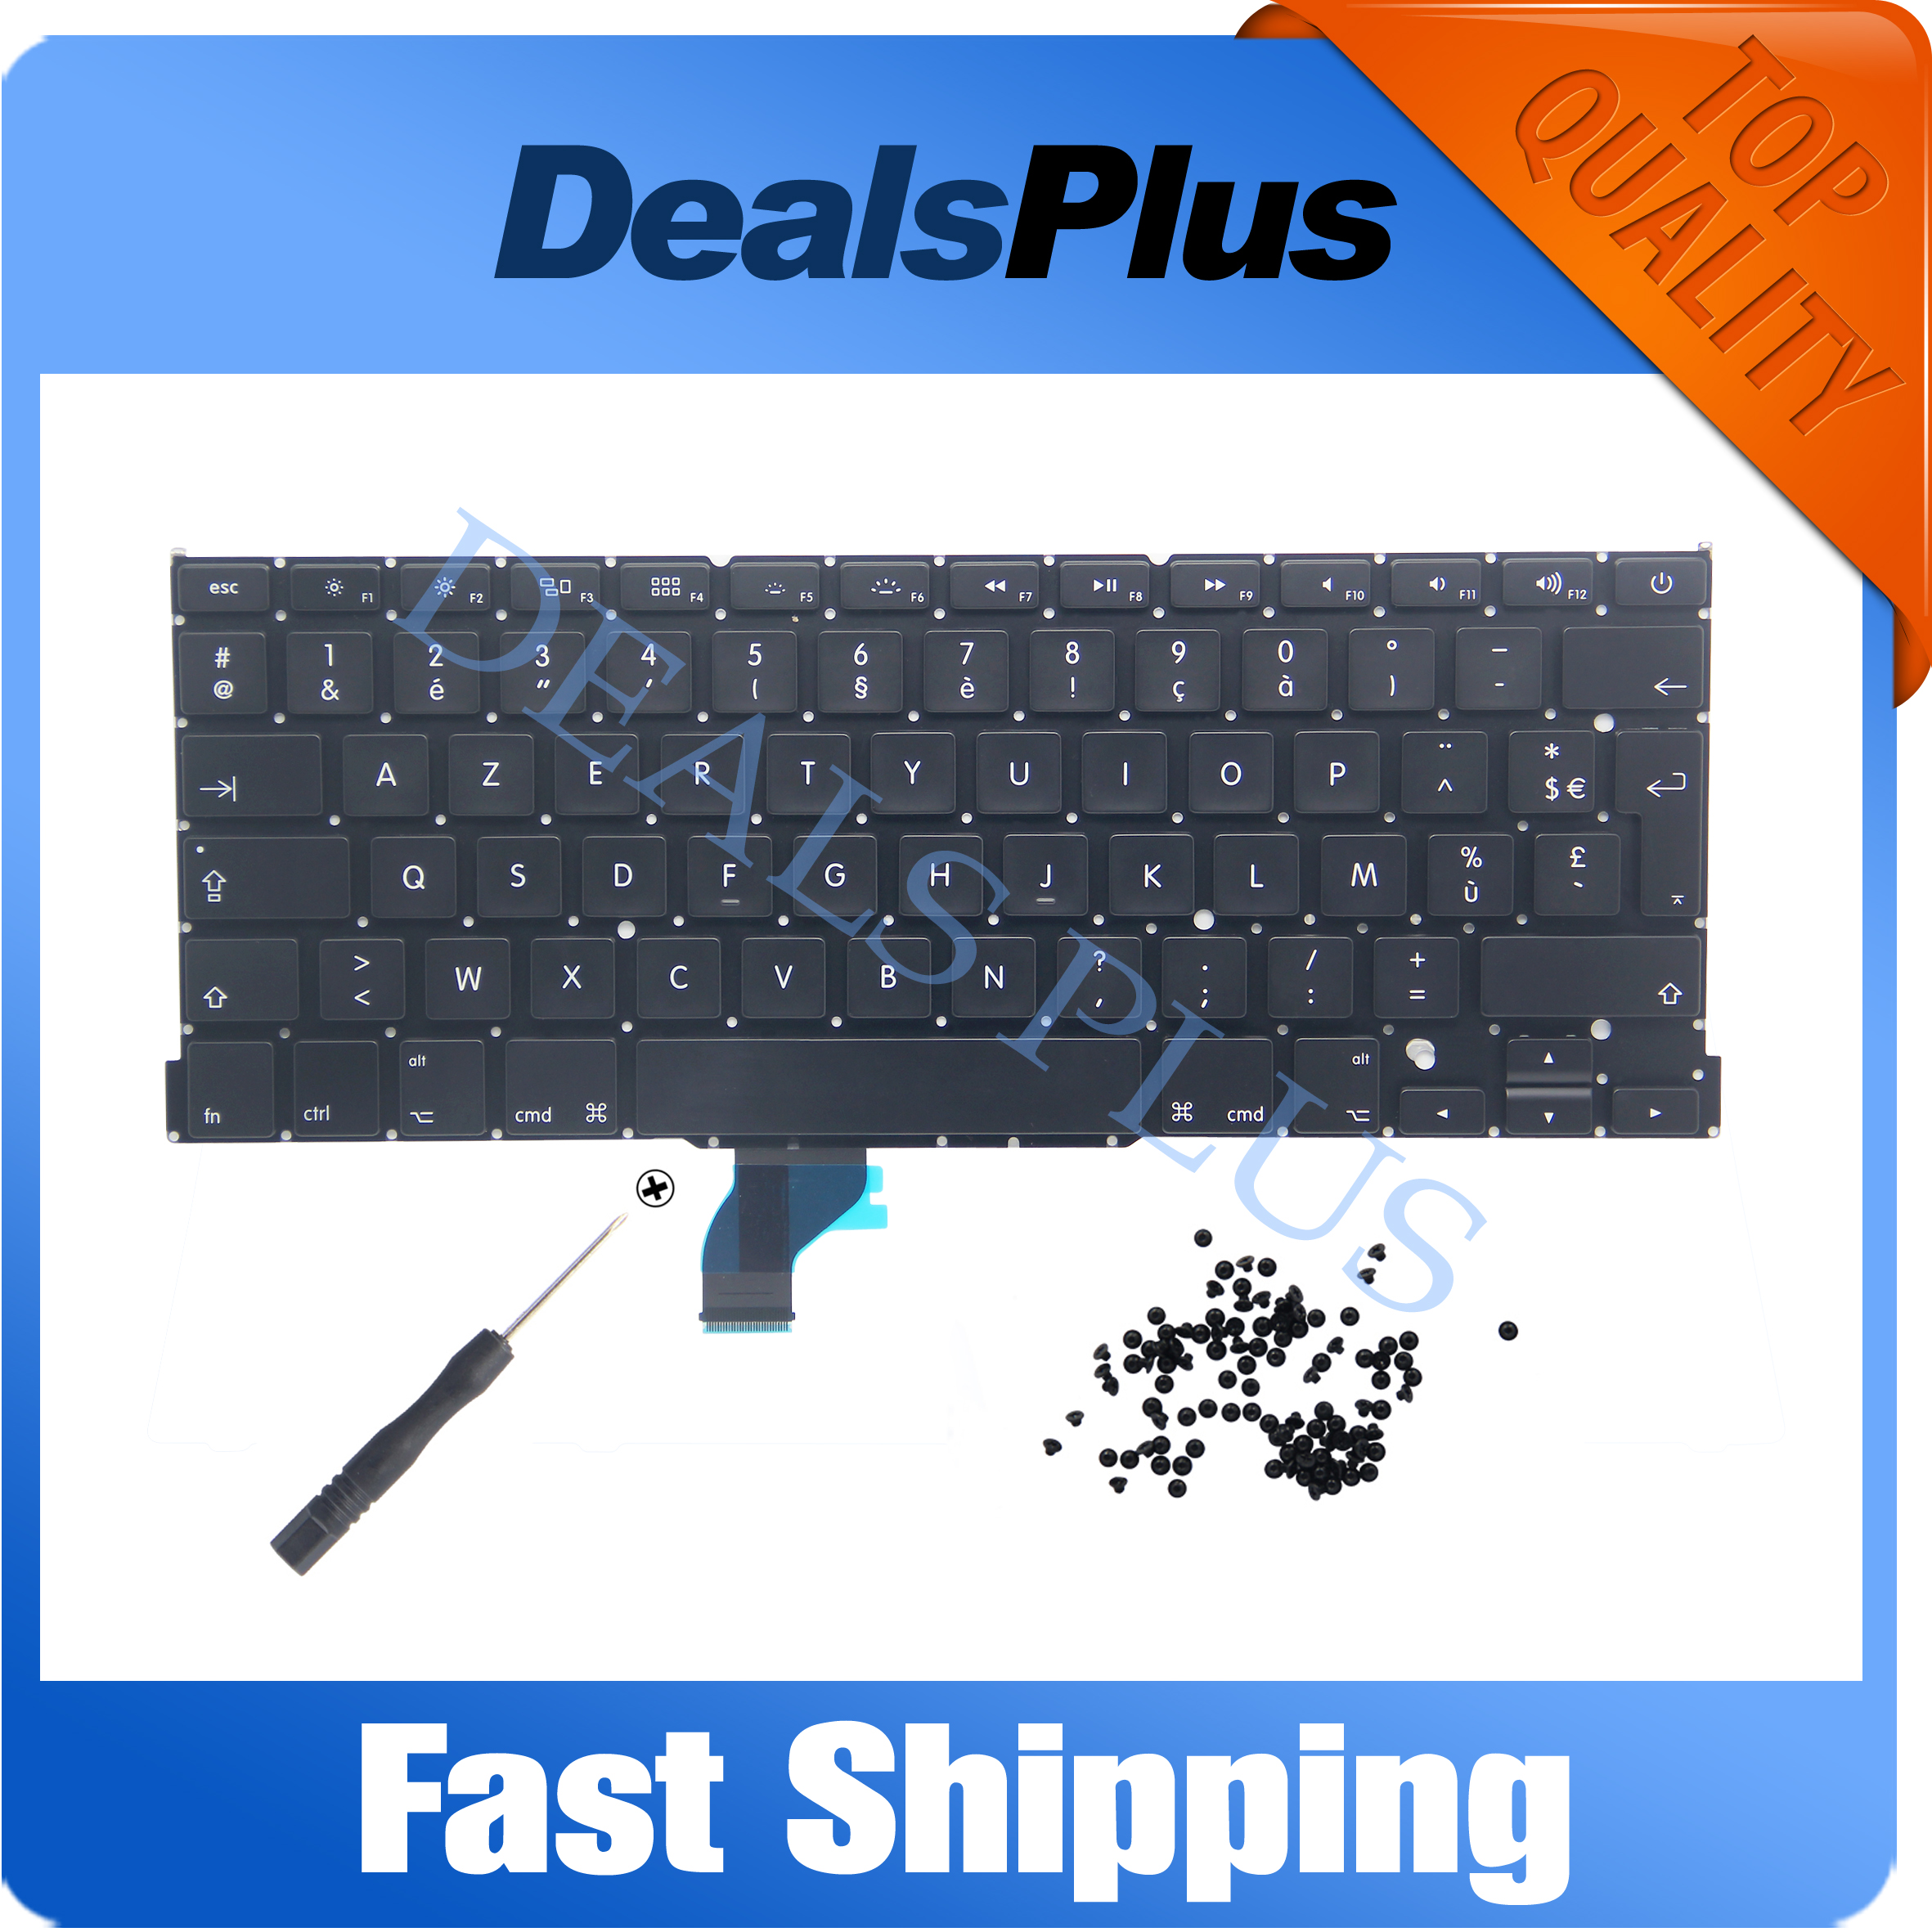 New French France FR AZERTY Keyboard For Macbook Pro Retina 13 A1502 ME864 ME865 ME866 2013 2014 2015 Year + 100 pcs screws image